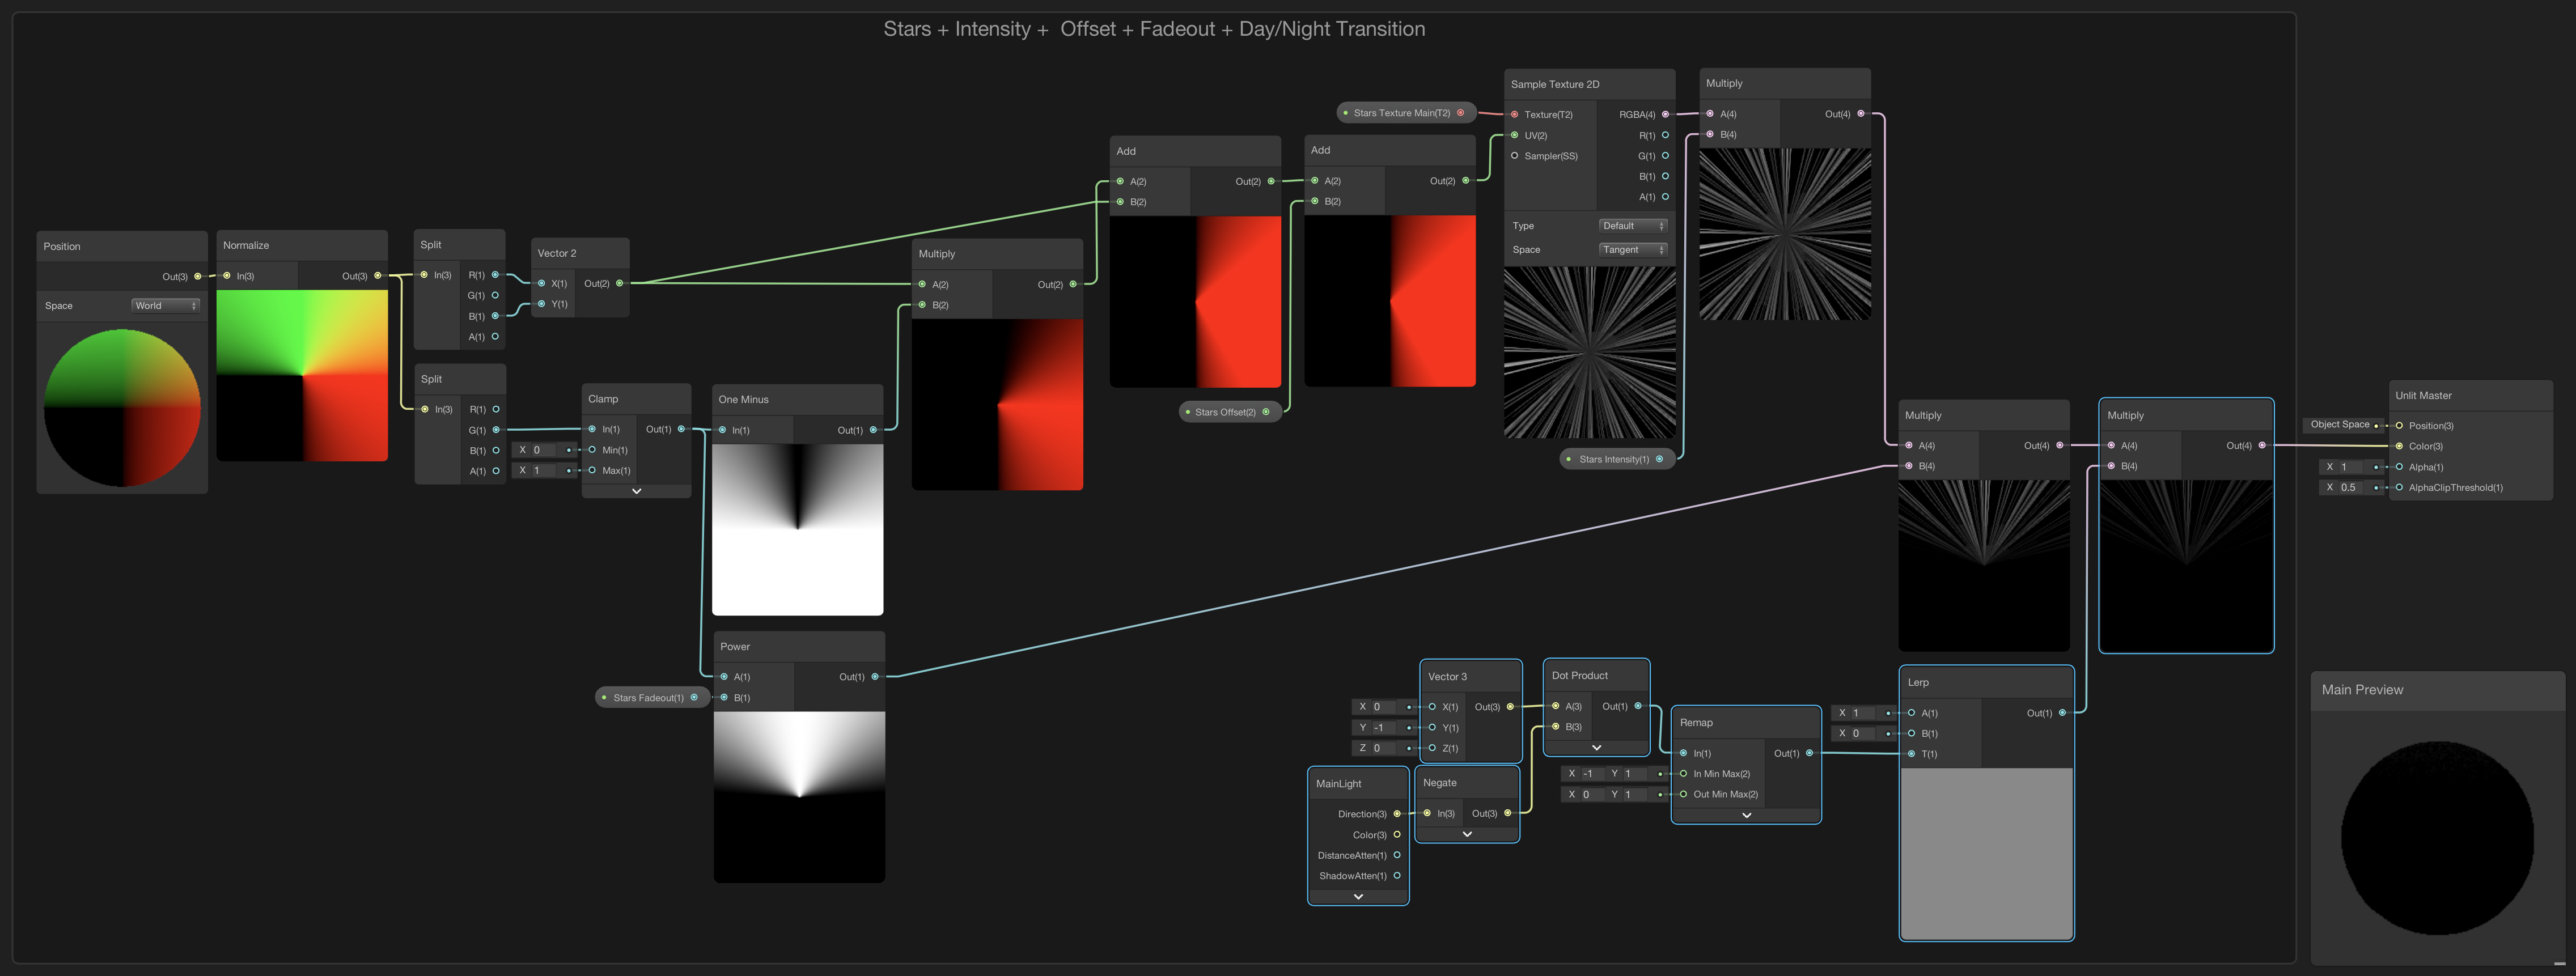 Image displaying the shader graph node setup to add a day night transition to the stars layer.